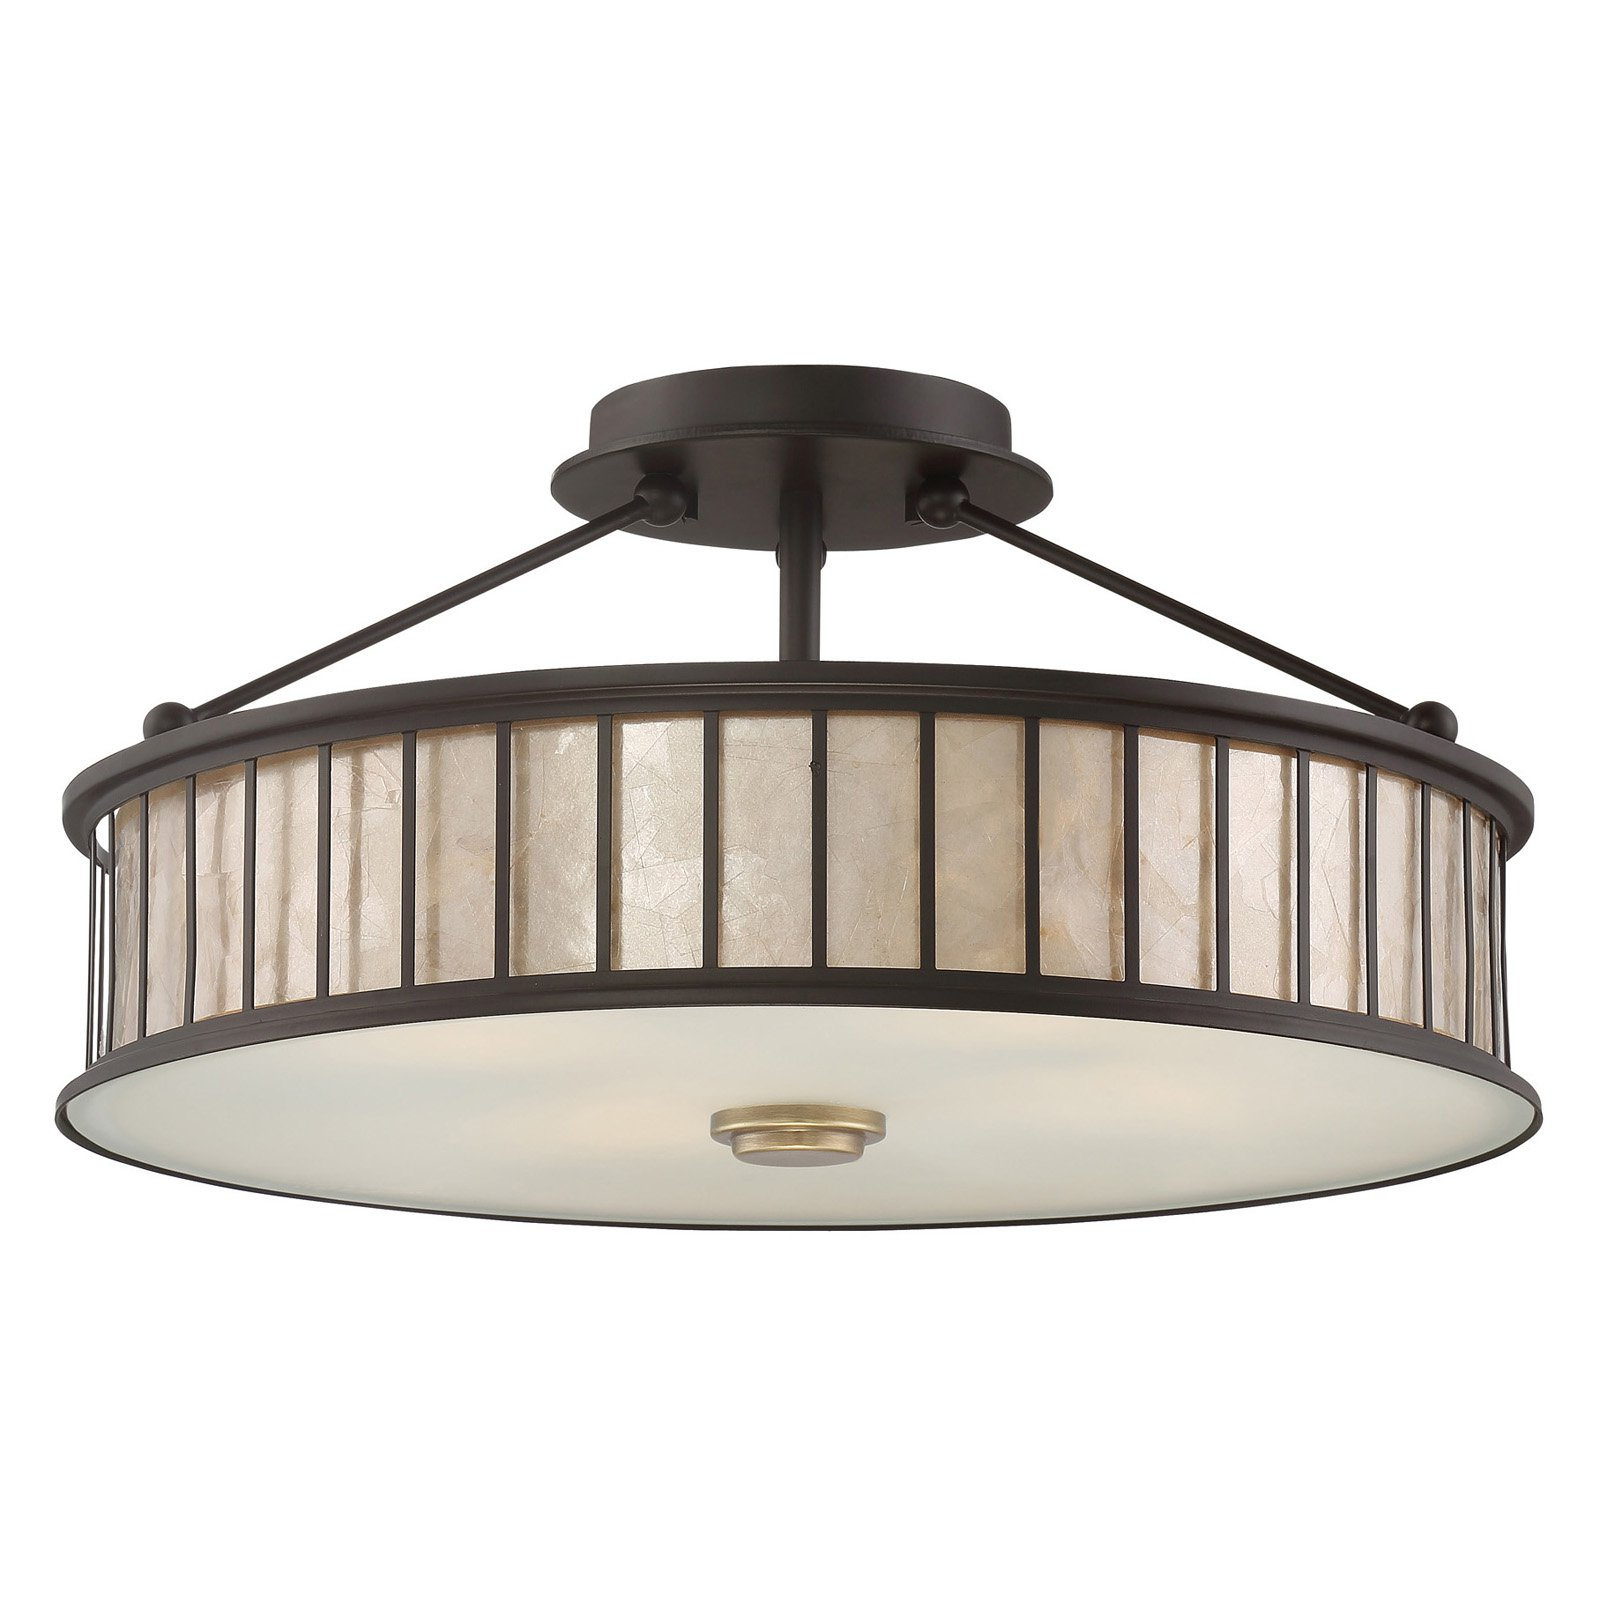 Quoizel Belfair MCBF1717WT Semi-Flush Mount Light by Quoizel